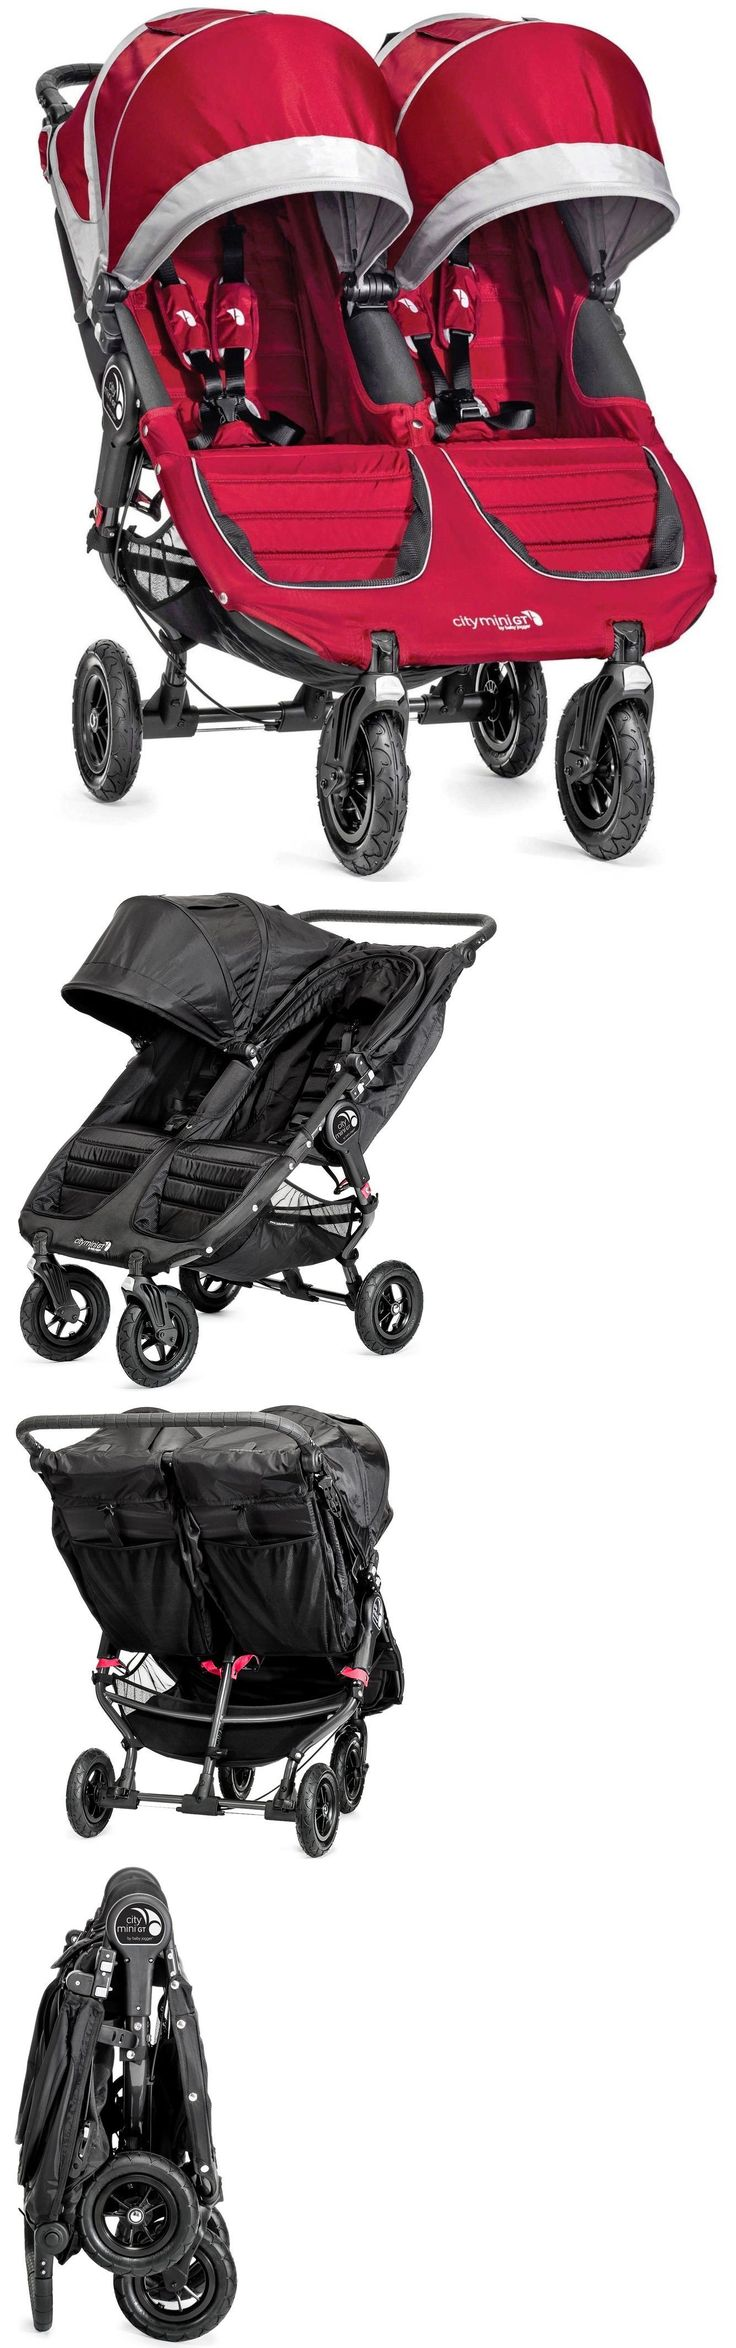 Other Baby Gear 100224: Baby Jogger City Mini Gt Double Twin All Terrain Stroller Crimson Gray New -> BUY IT NOW ONLY: $492.99 on eBay!